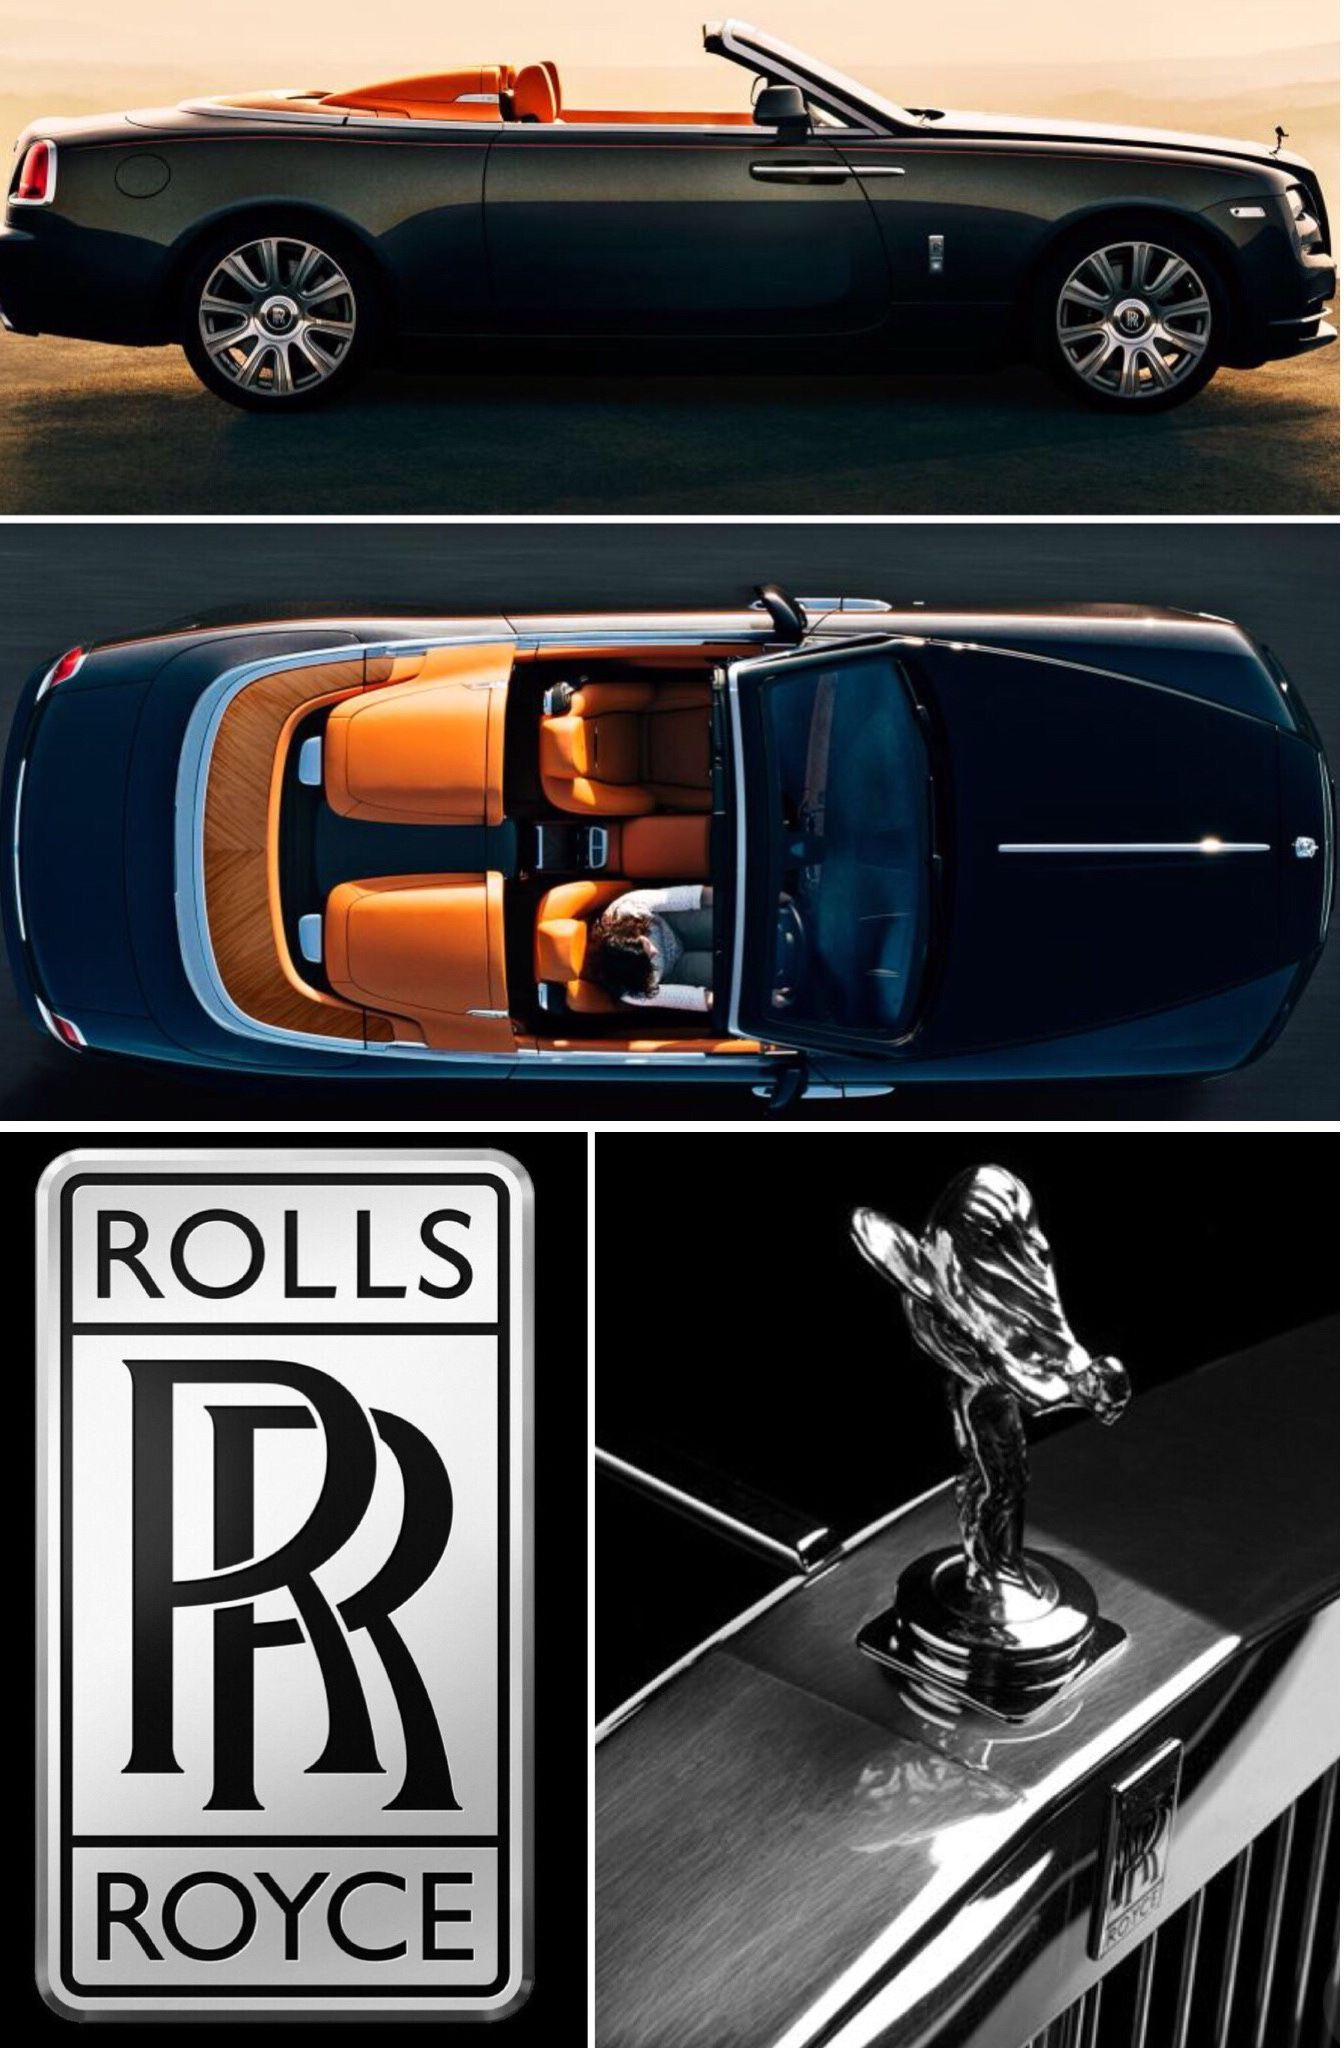 Rolls Royce Dawn with tonneau cover e idea reminds me of the